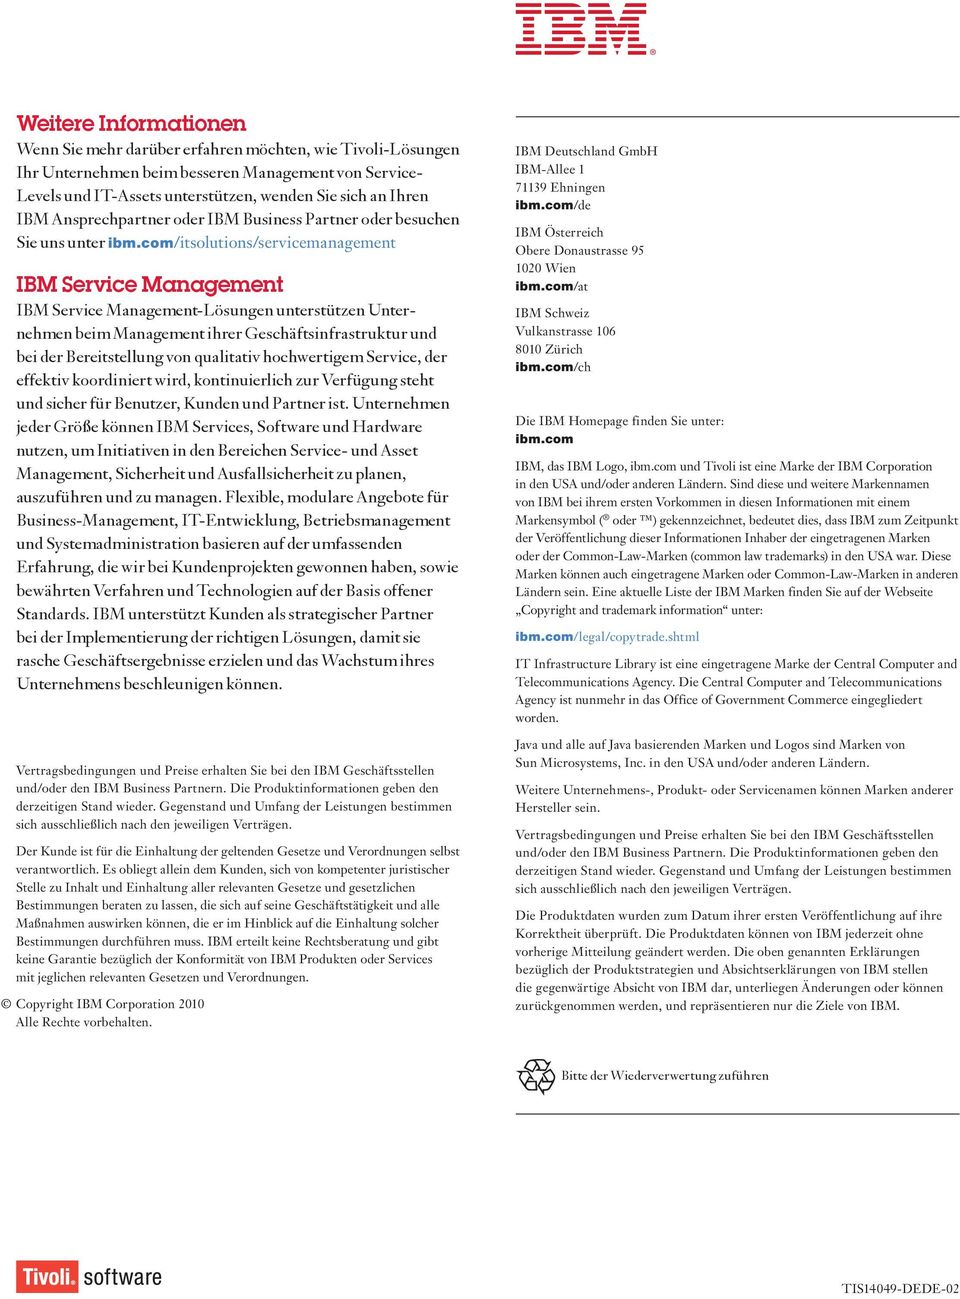 com/itsolutions/servicemanagement IBM Service Management IBM Service Management-Lösungen unterstützen Unternehmen beim Management ihrer Geschäftsinfrastruktur und bei der Bereitstellung von